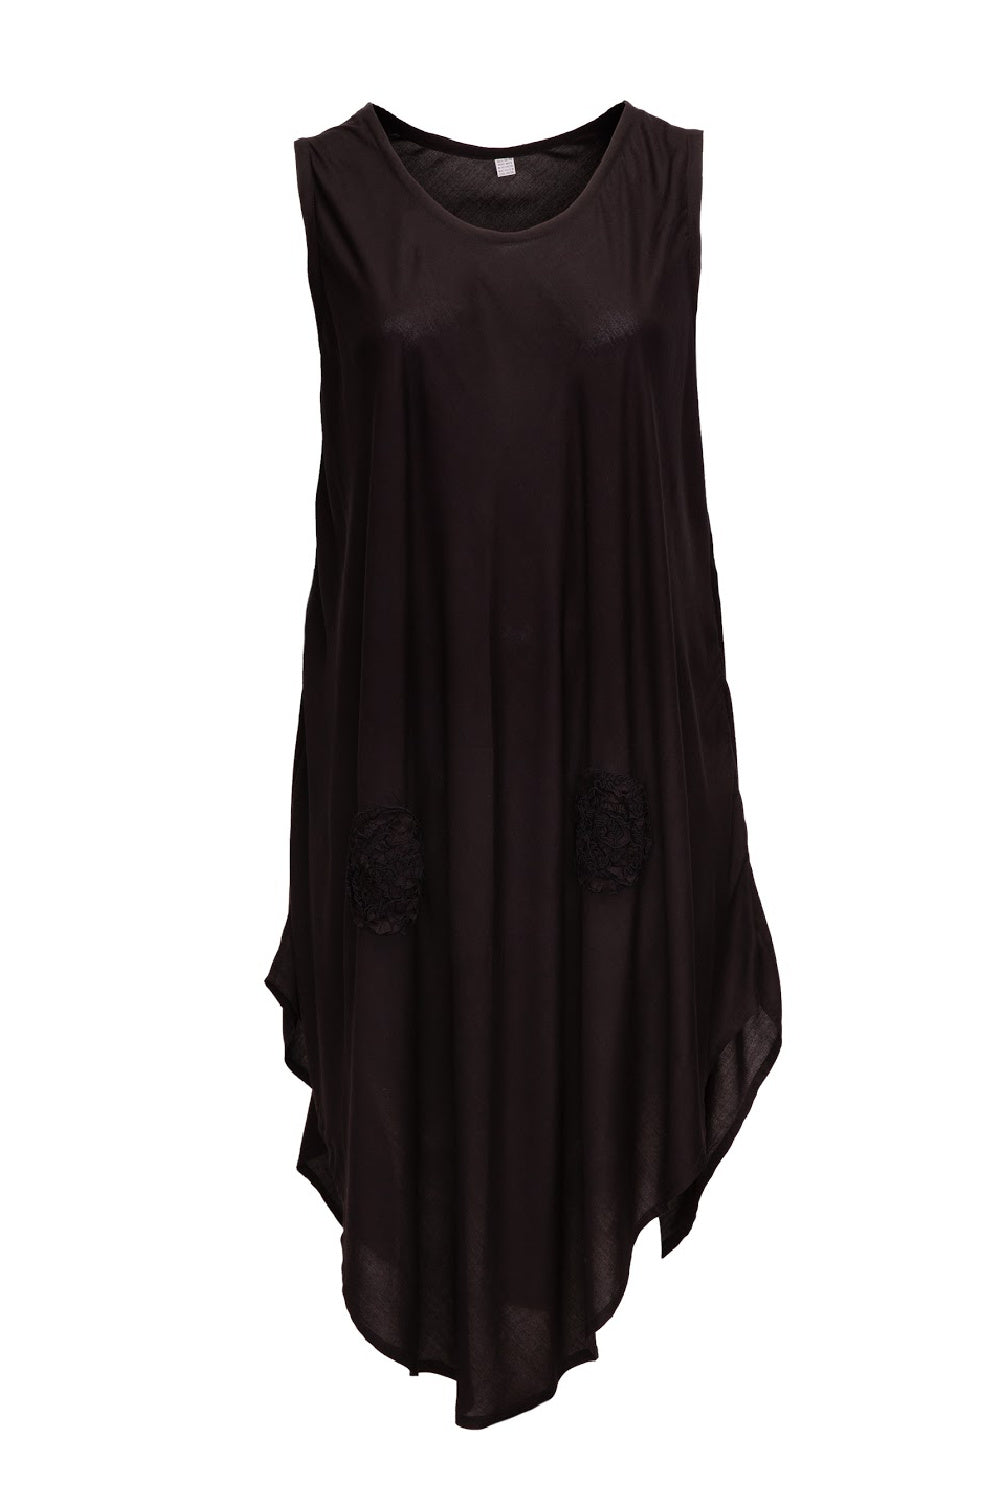 plus-size-summer-dress-black